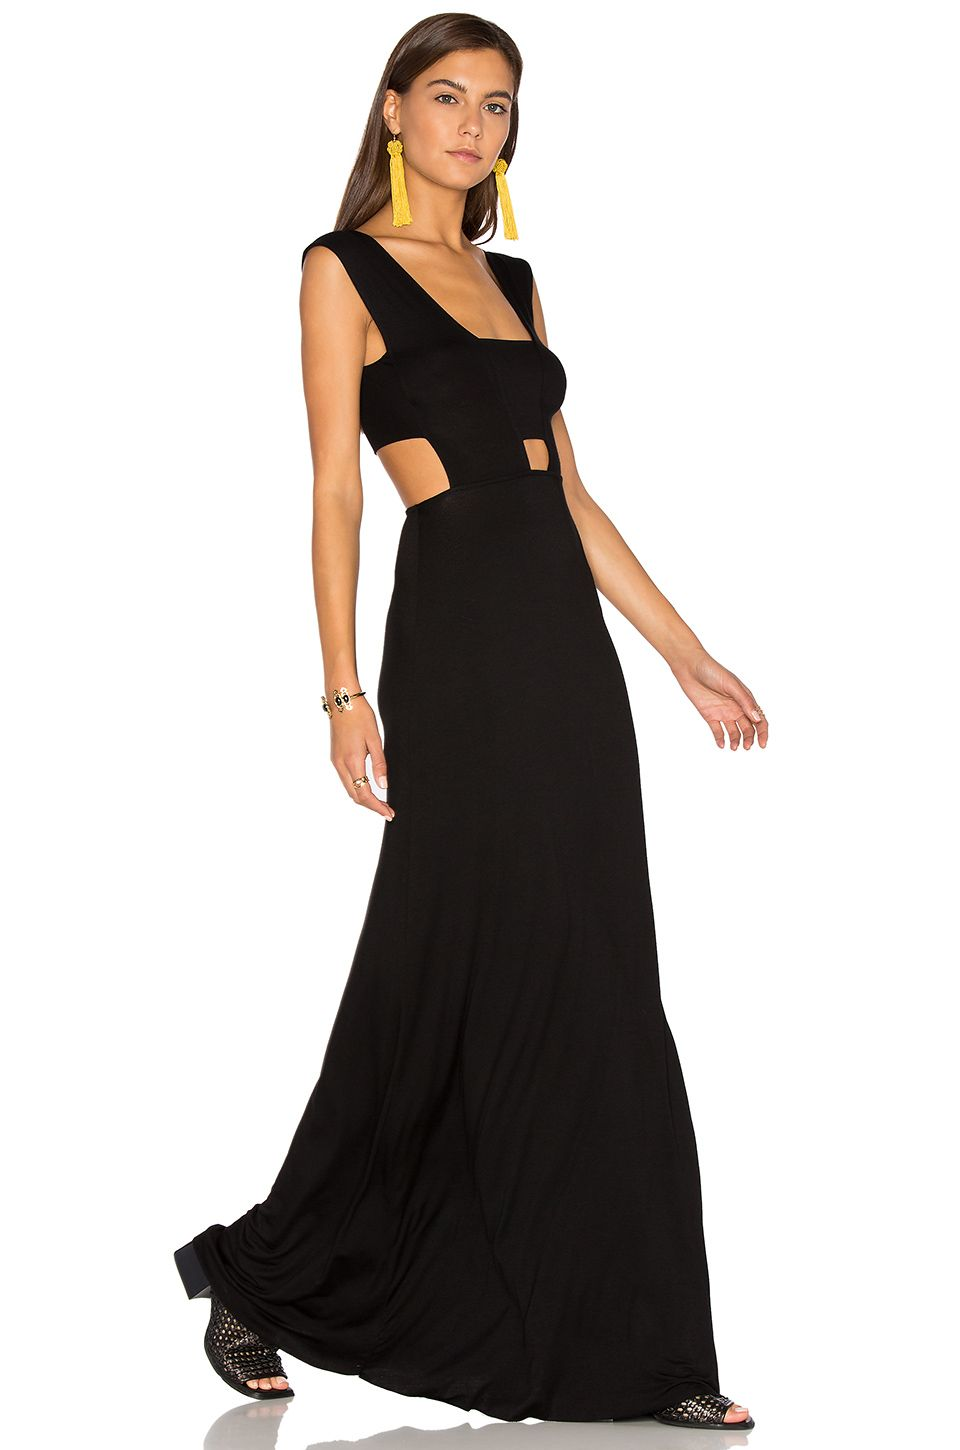 Black dress for wedding party  Clayton Michelle Dress in Black  I want what shes wearing